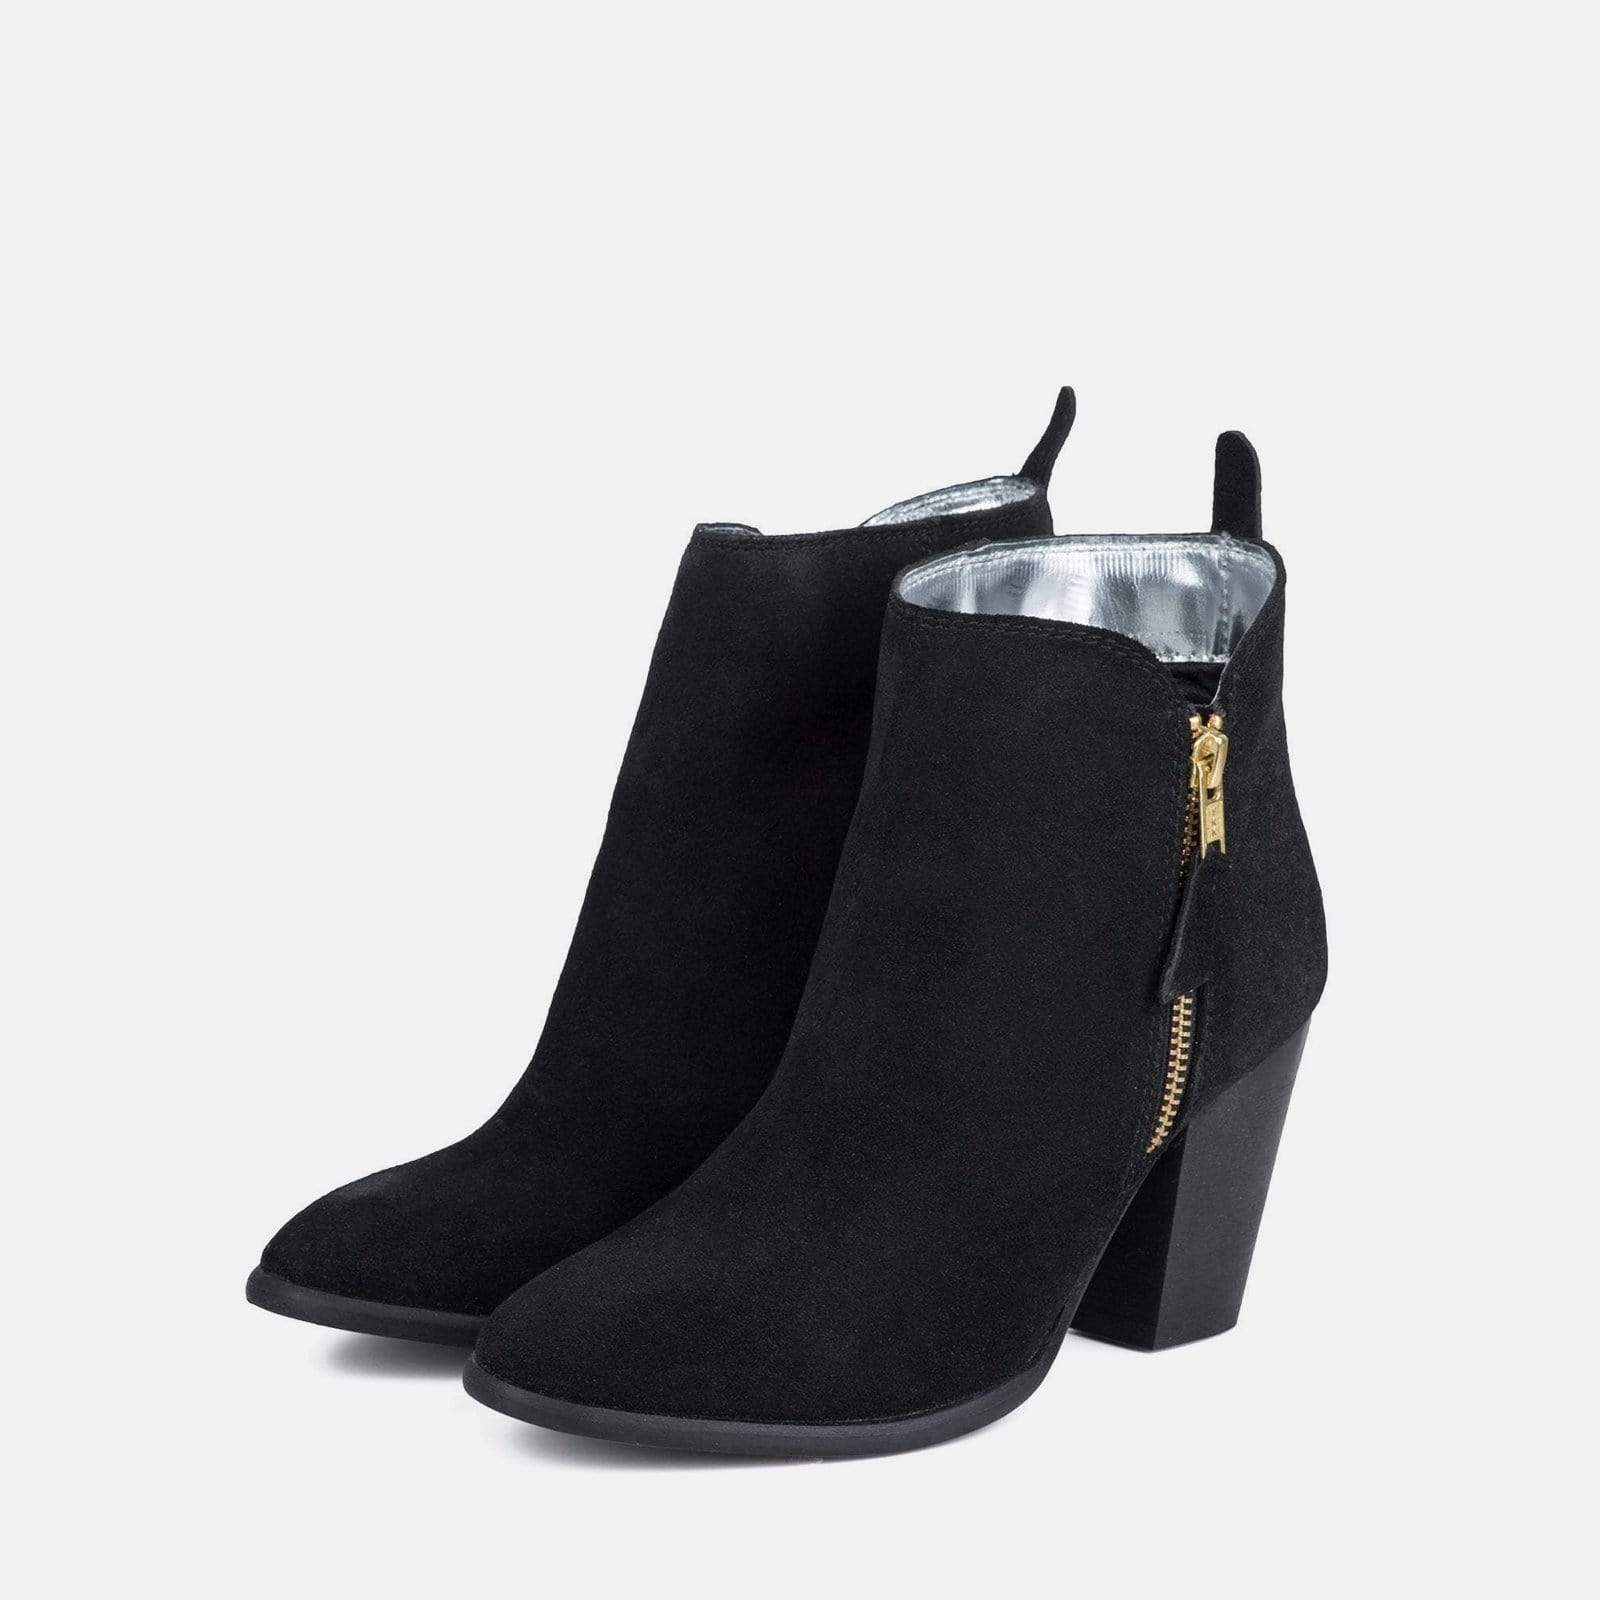 GENEVIEVE BLACK SUEDE ANKLE BOOT